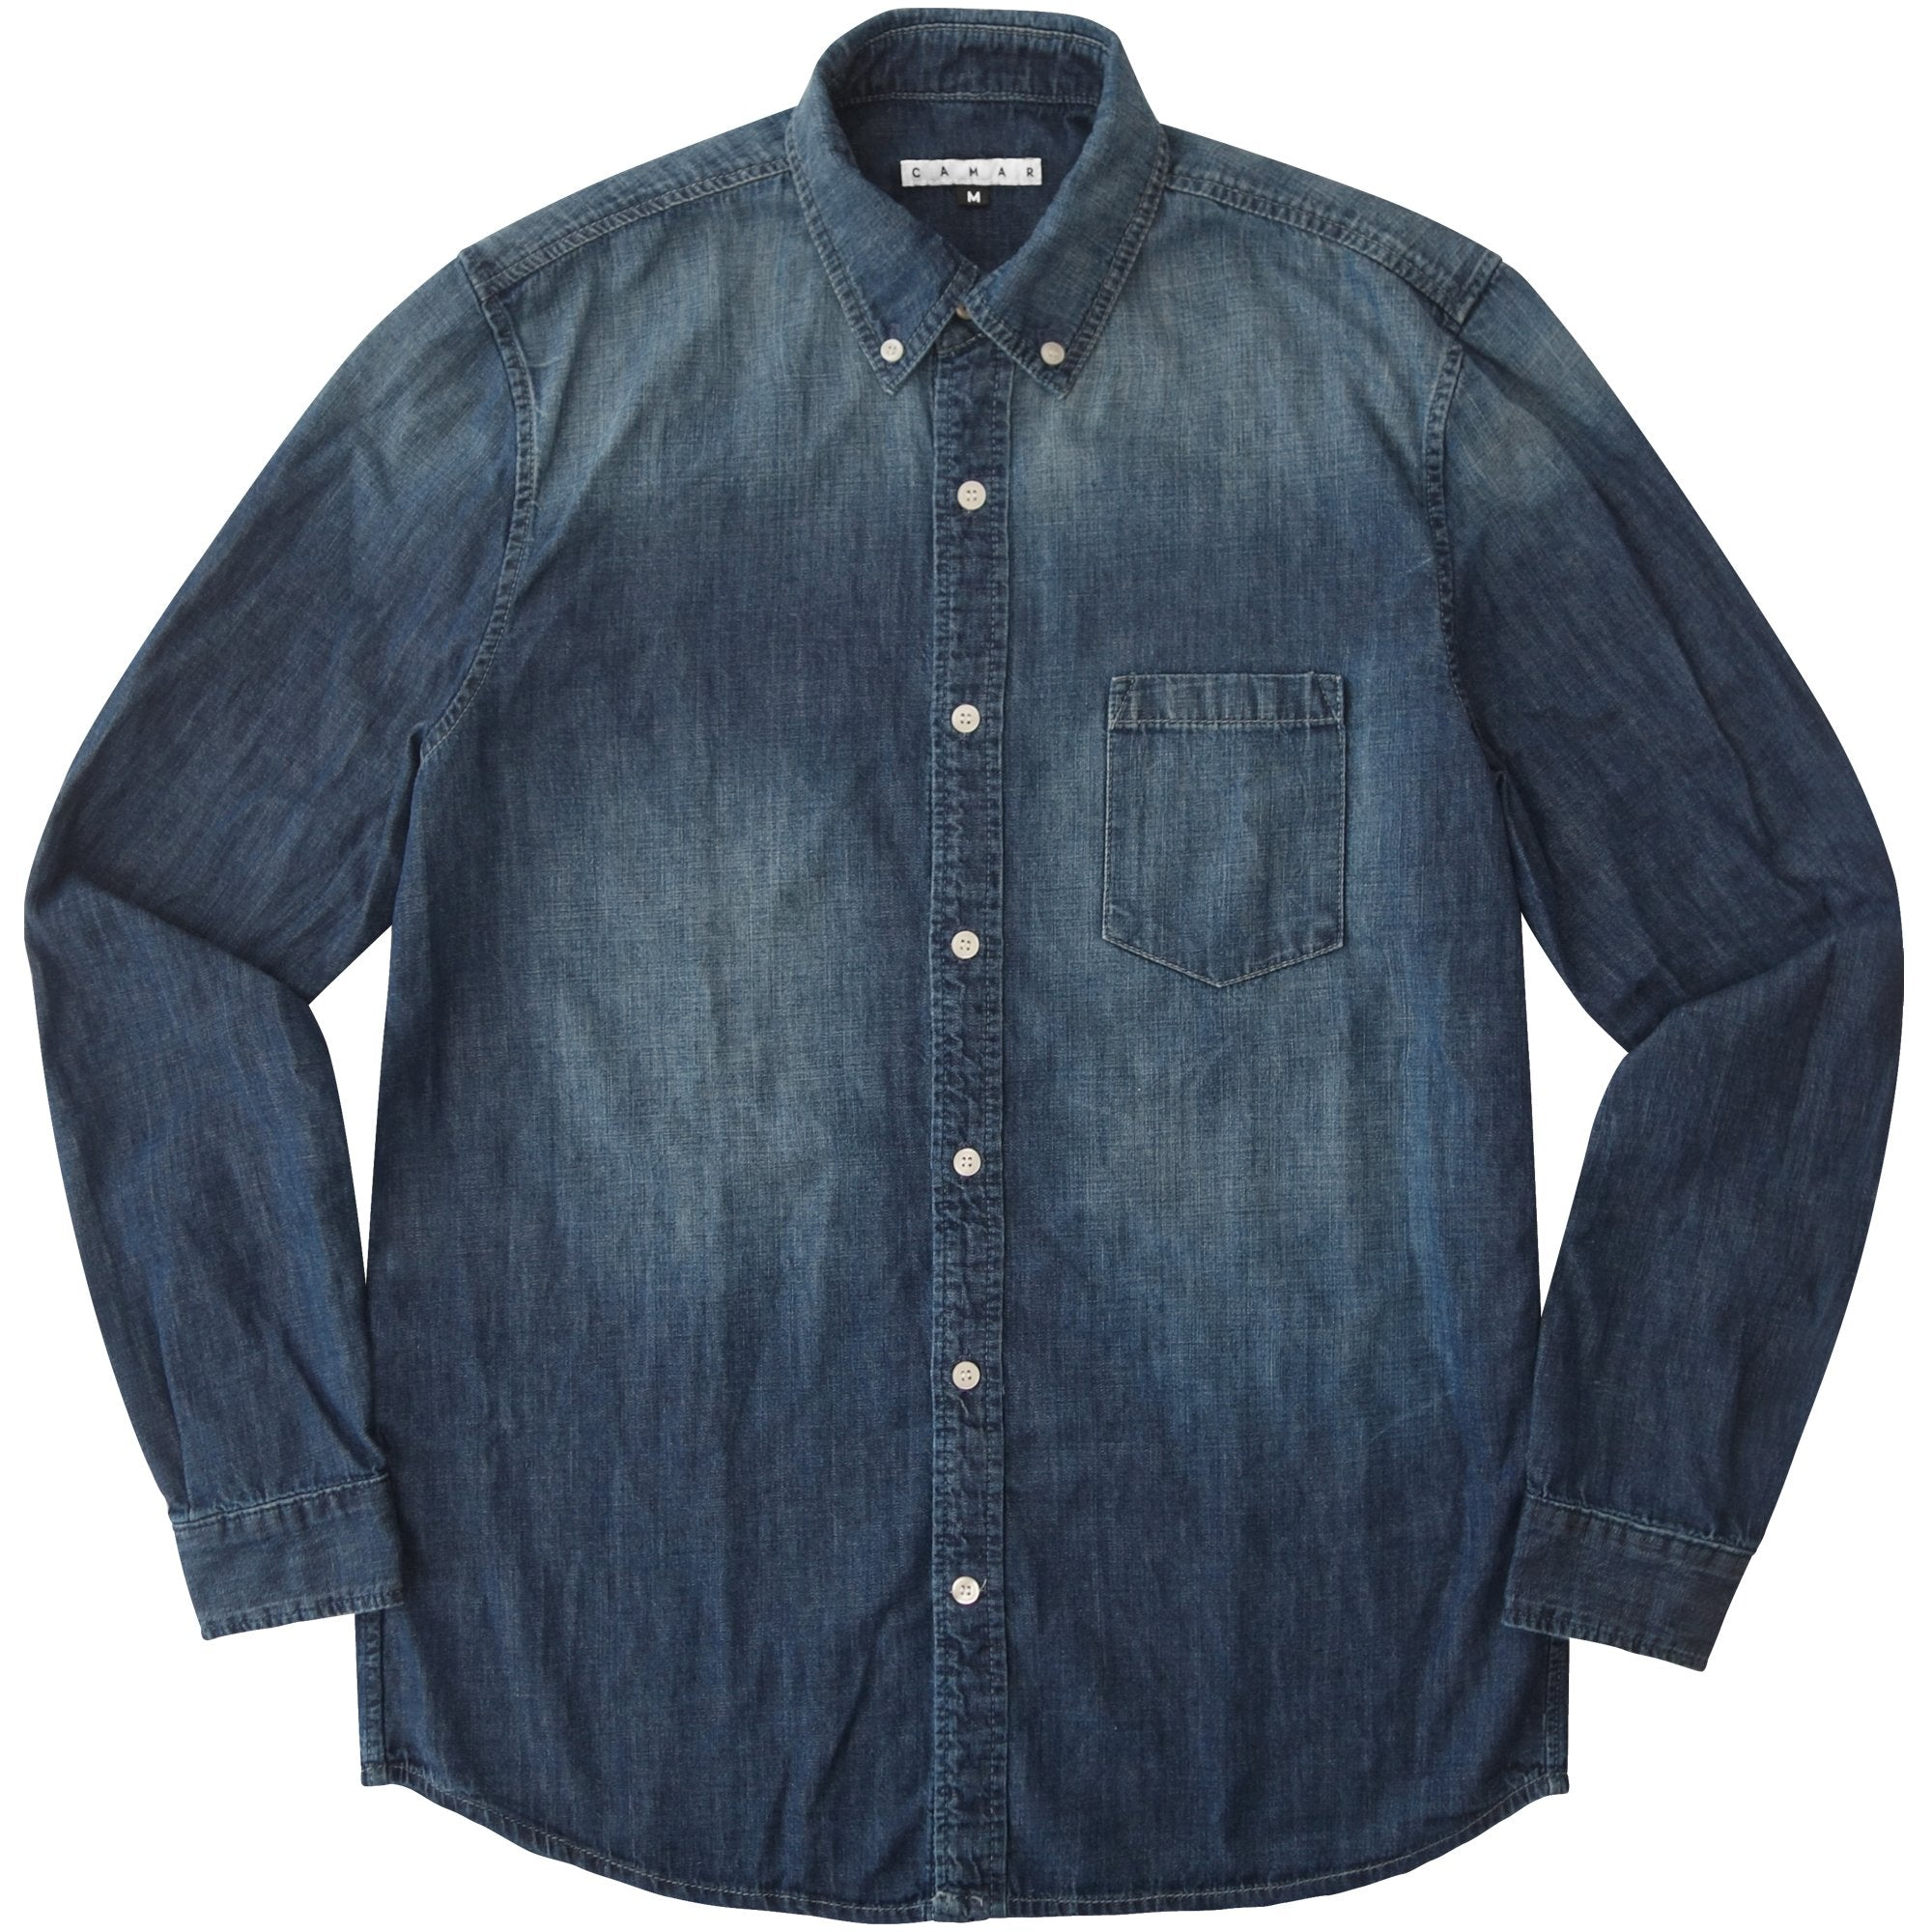 Washed Denim Woven Button Up - CAMAR